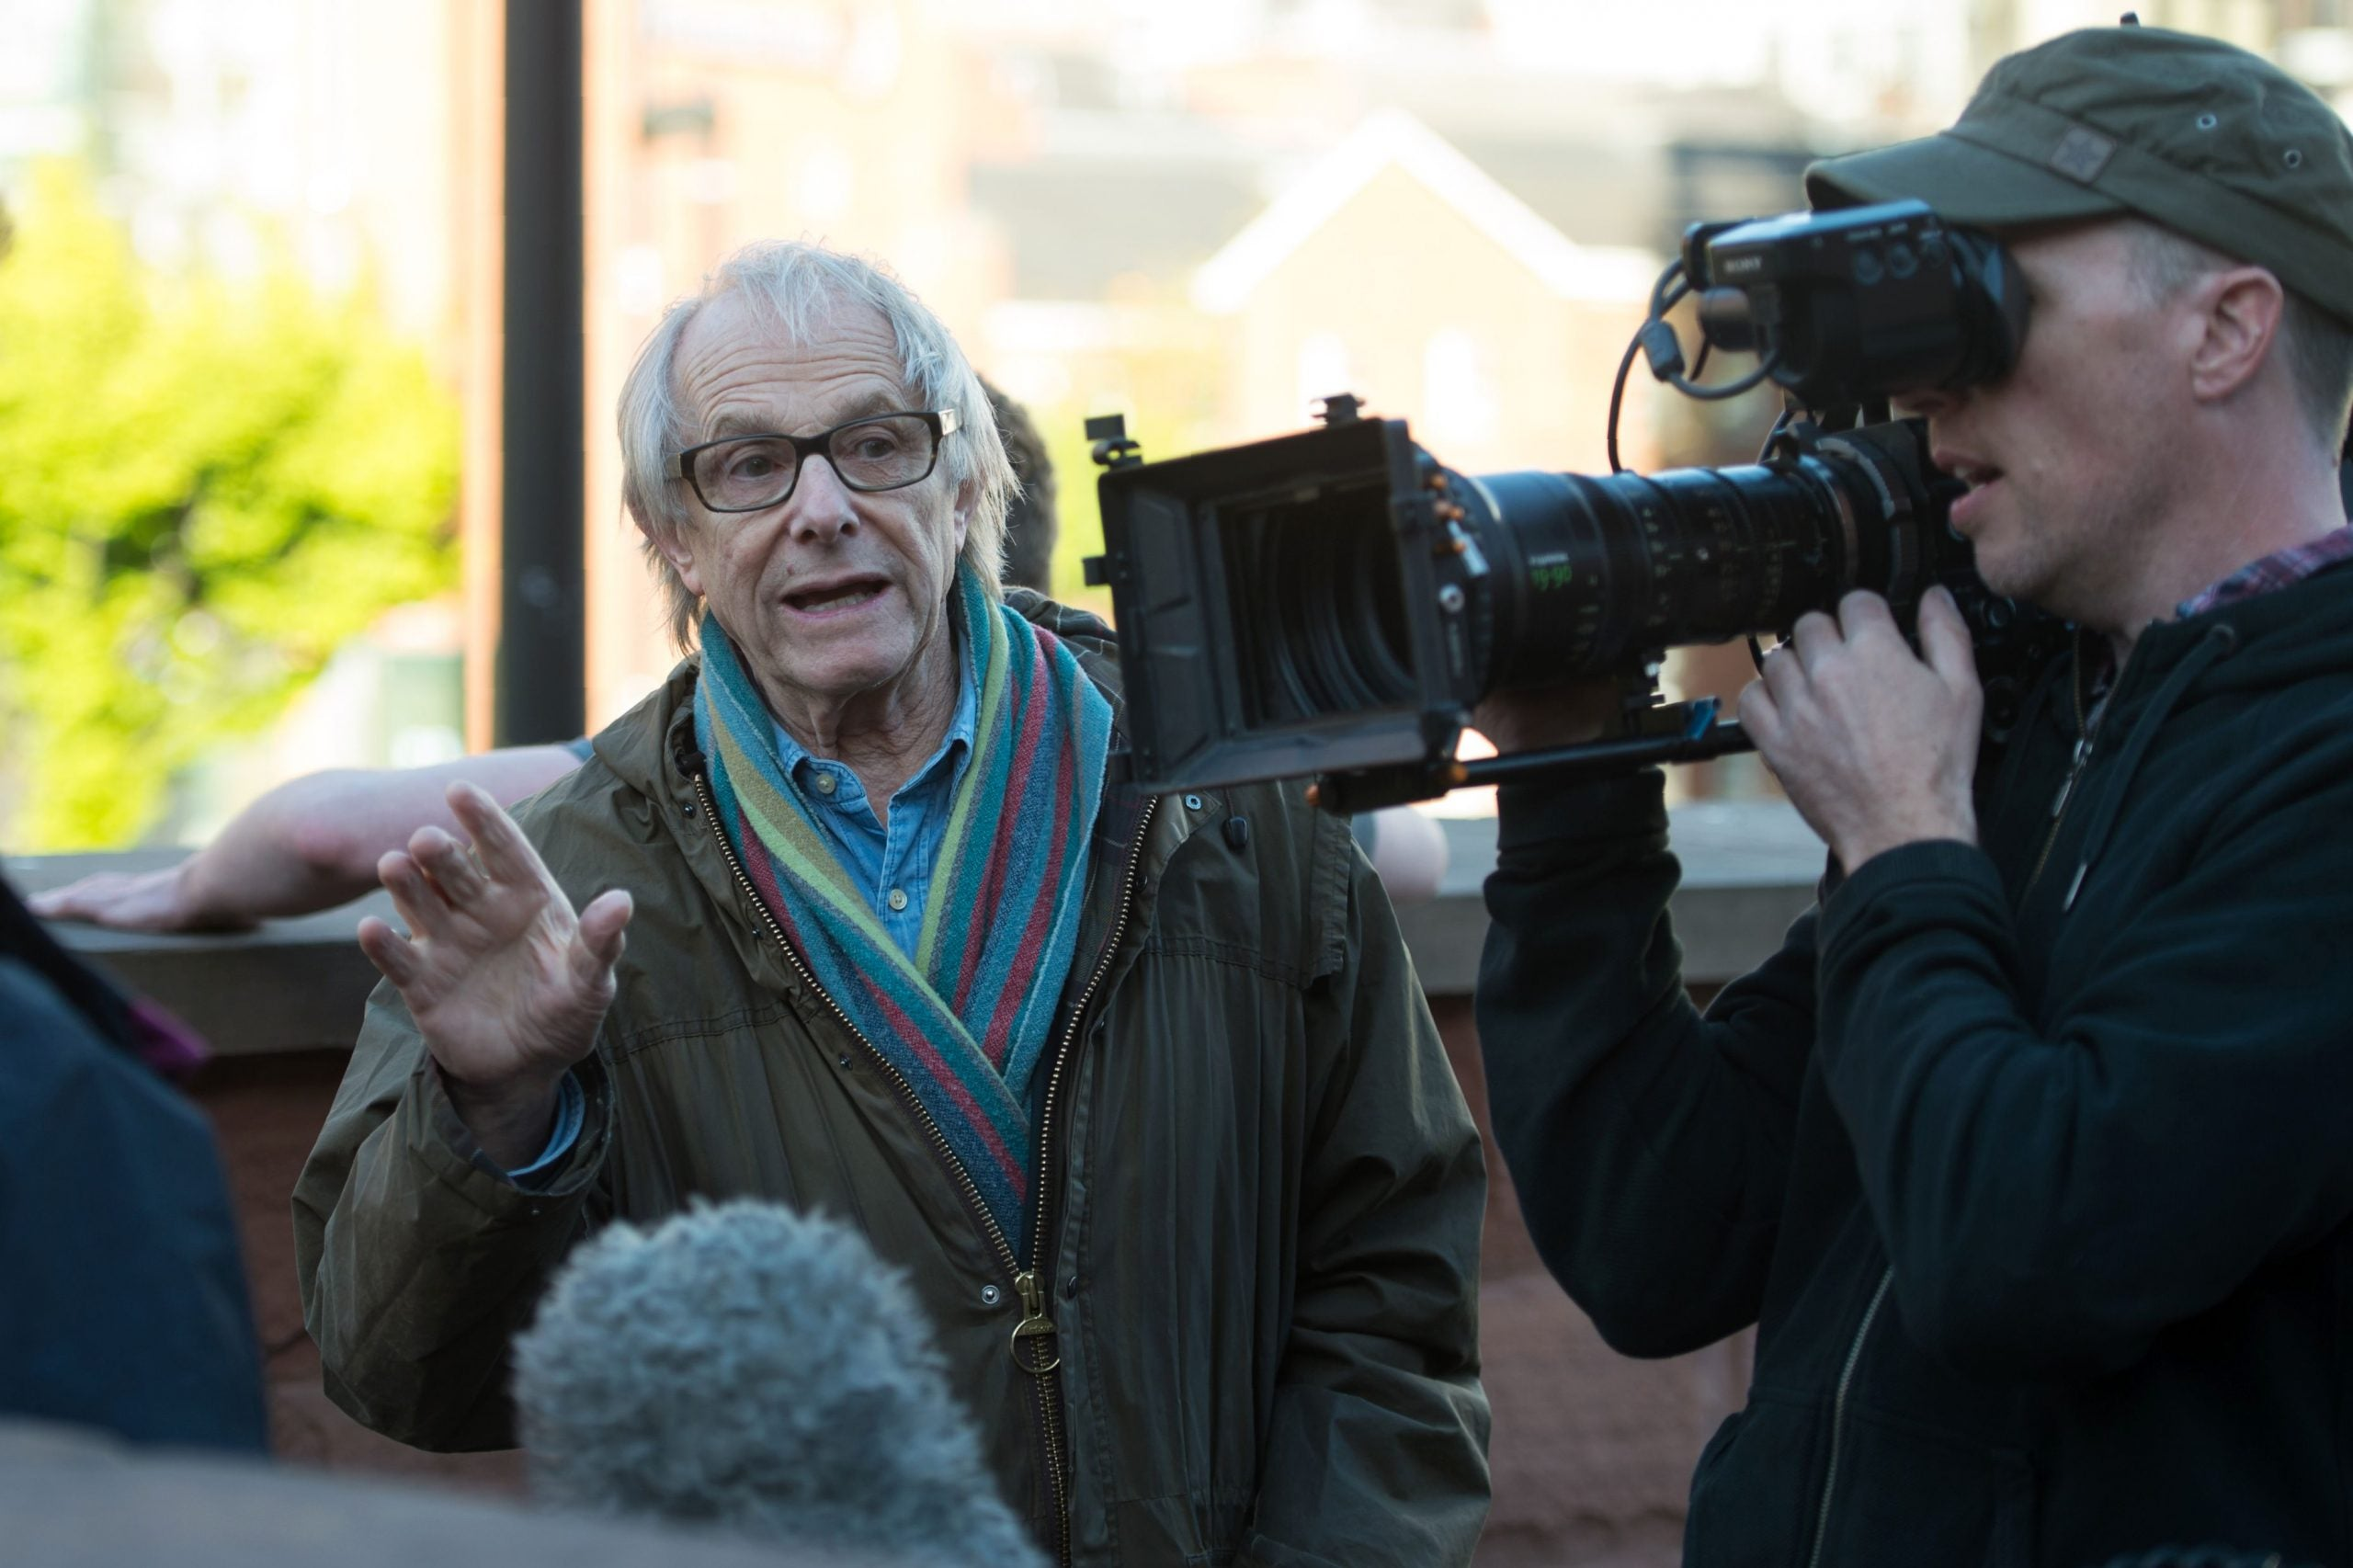 What's the difference between a Ken Loach and a Marvel film? I know which I'd rather watch